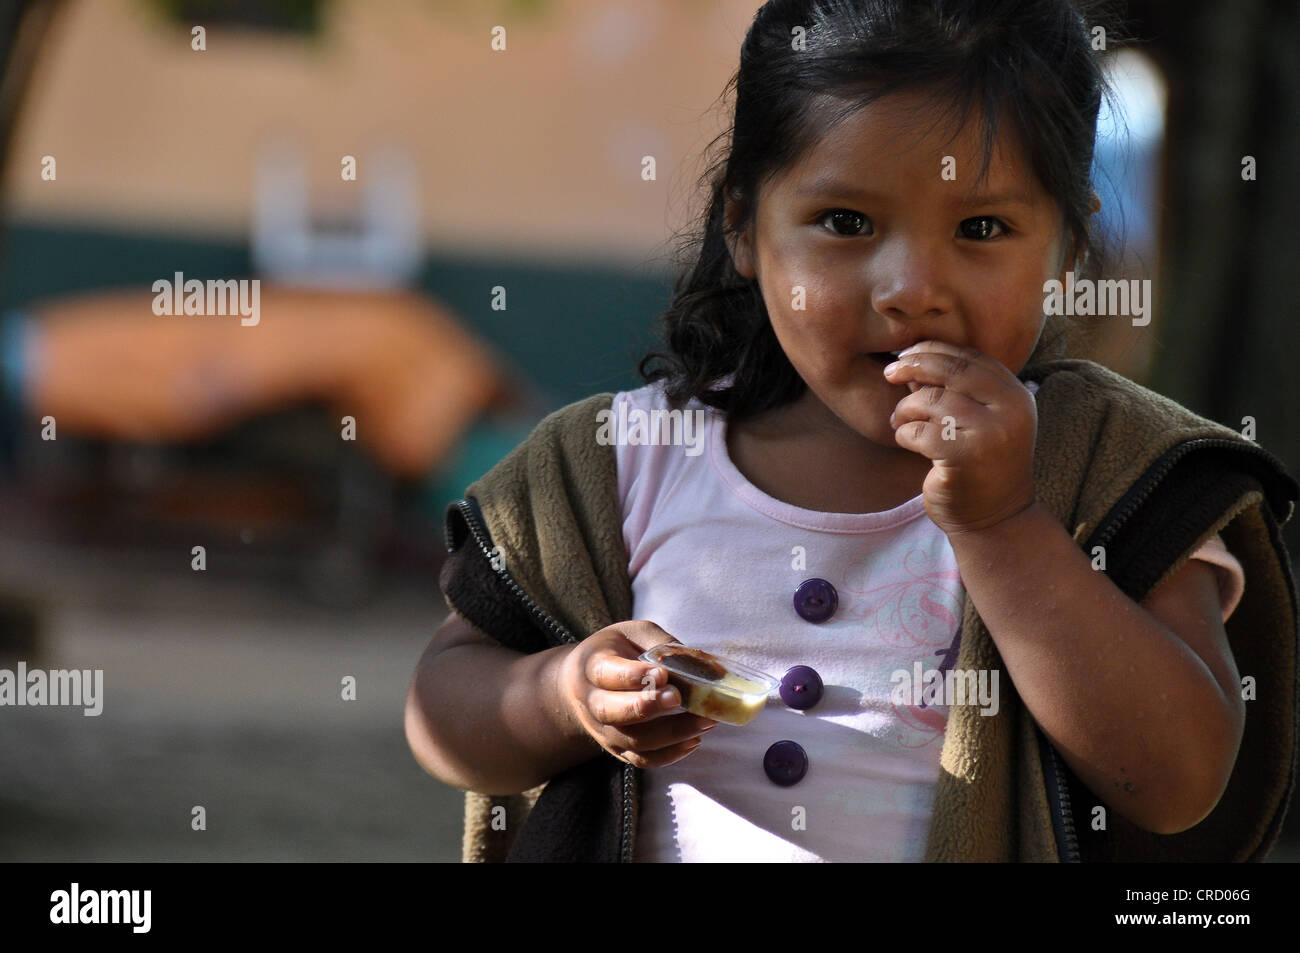 Girl of the indigenous peoples, Cusco, Peru, South America - Stock Image